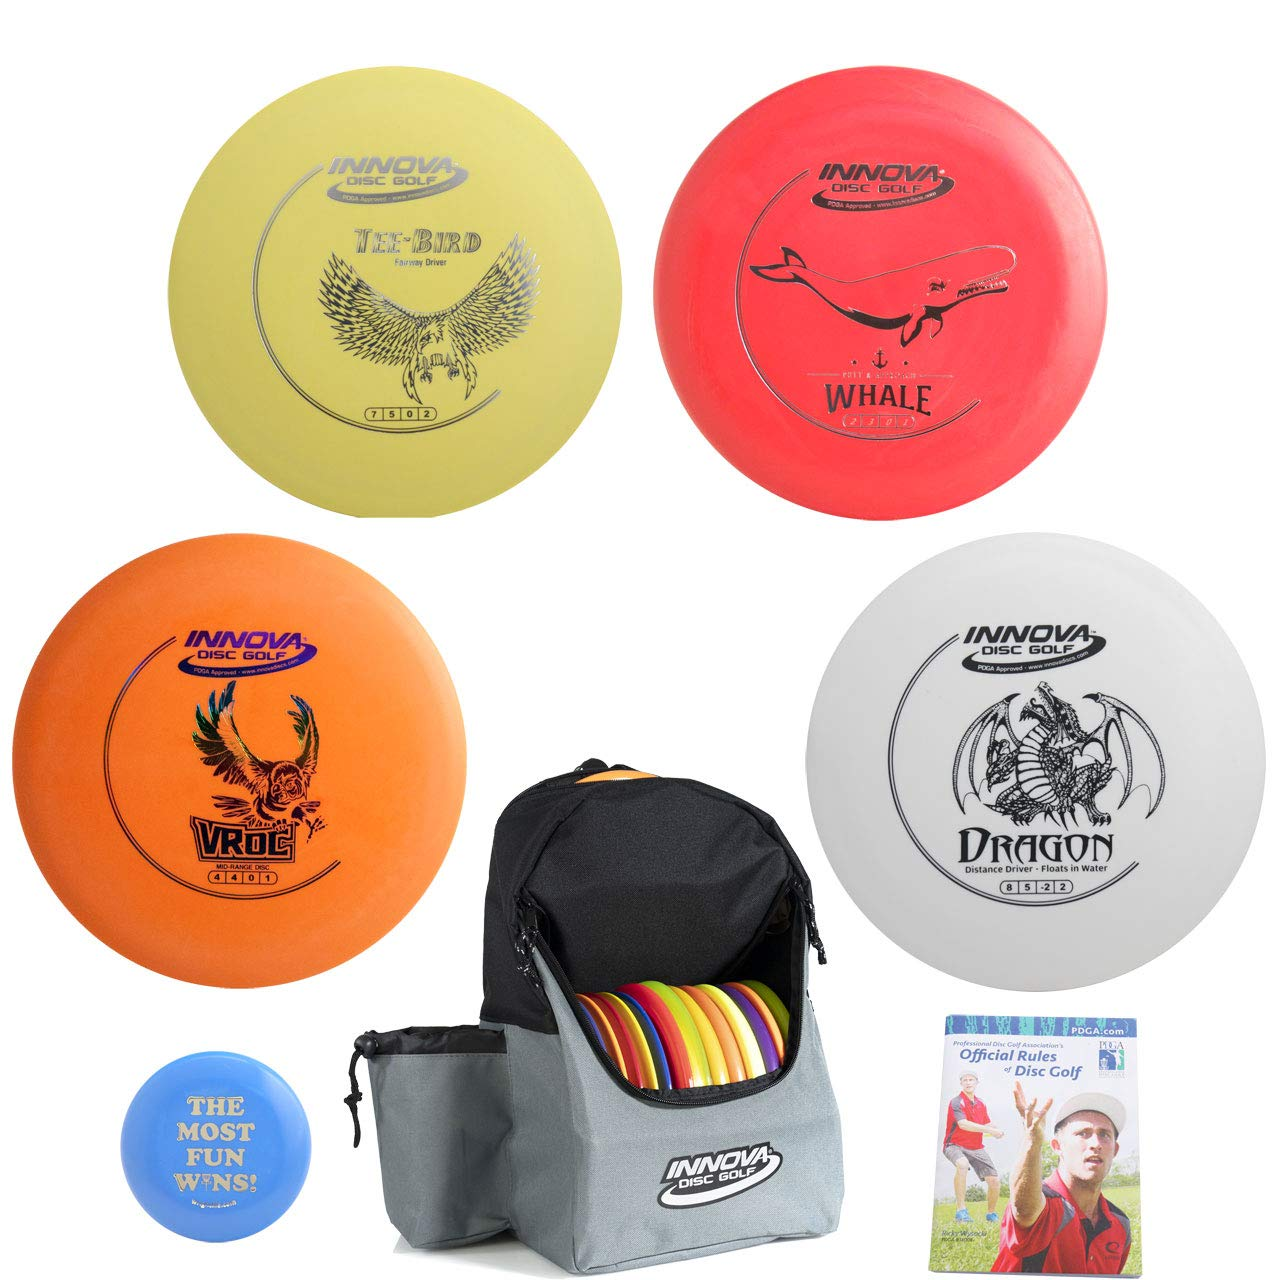 Innova Disc Golf Complete Gift Set Bundle - Discover Backpack Bag, 2 Drivers (One Floater), Mid-Range, Putter + Mini Marker Disc & Rules (7 Items) (Bag: Gray/Black) by Innova Disc Golf